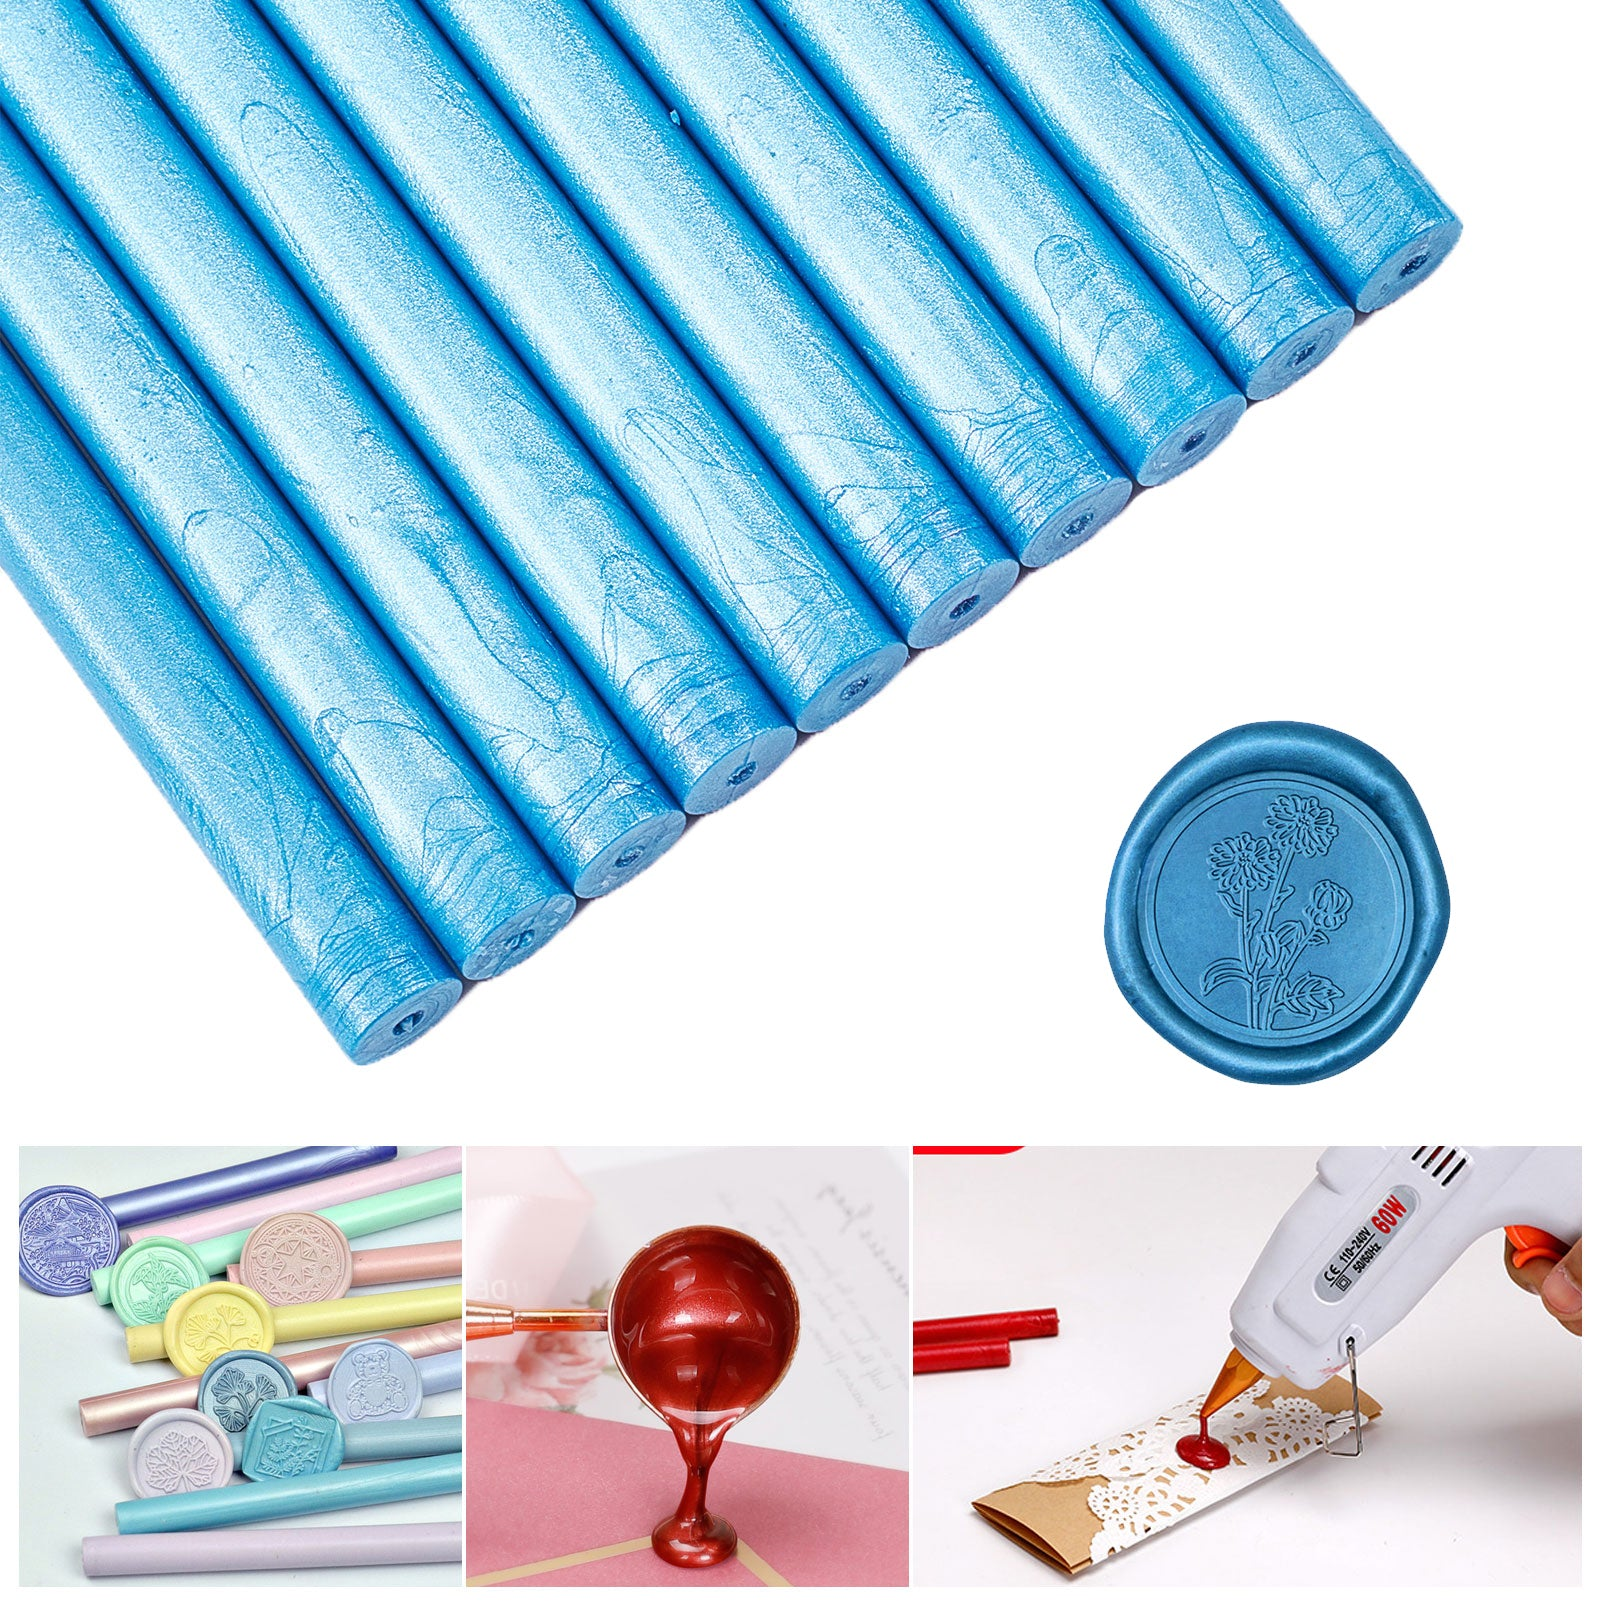 20 Pieces Glue Gun Sealing Wax Sticks 11mm(Blue)